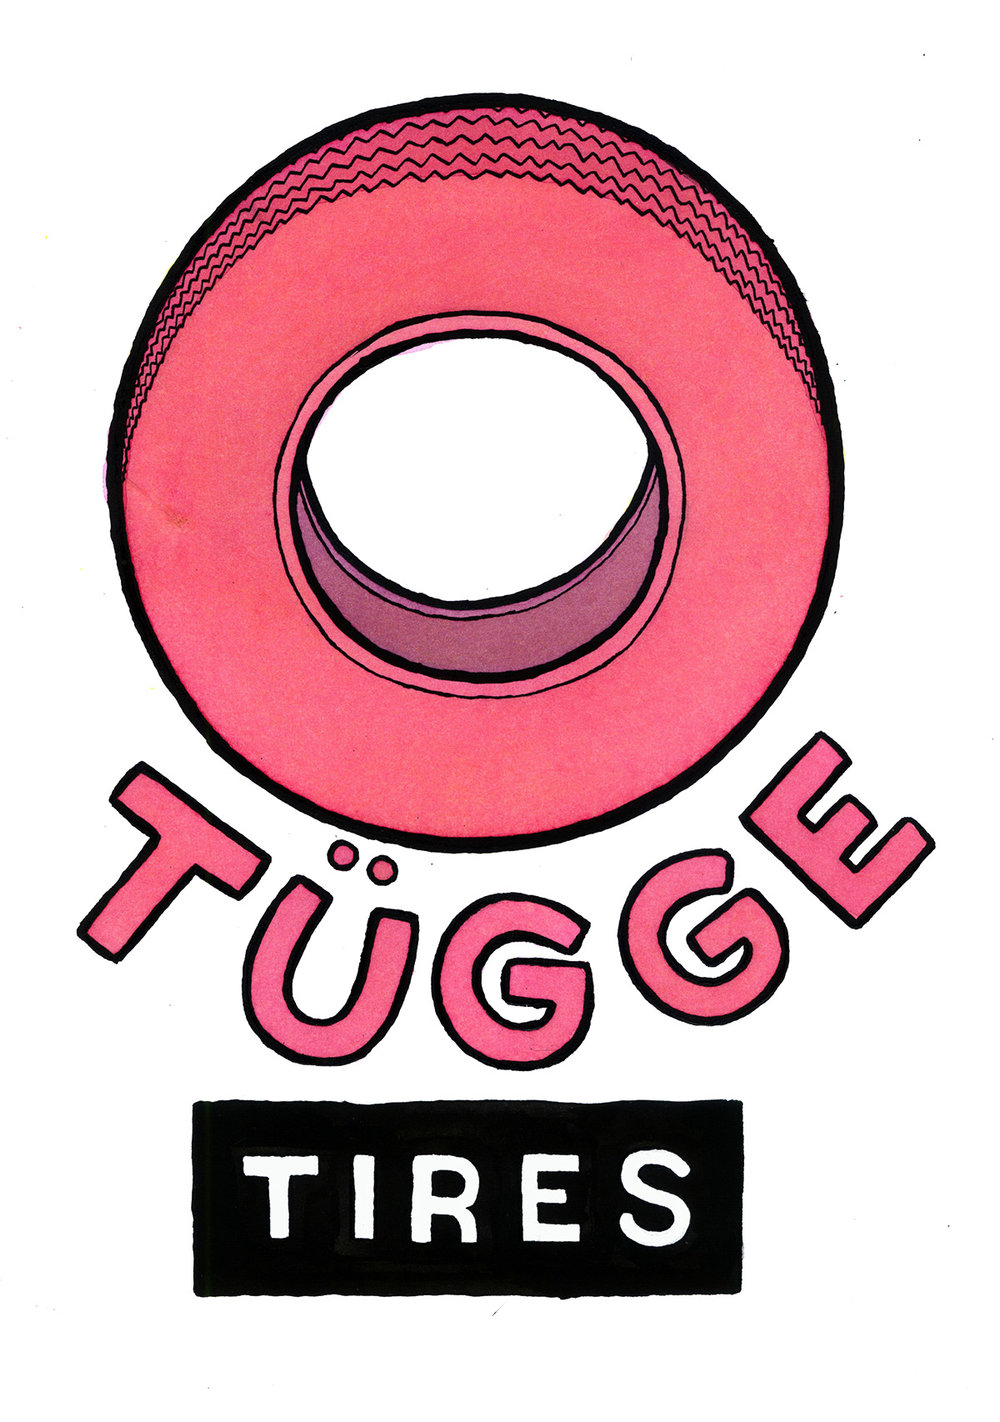 If there was once a special brand of tires used exclusively for the sides of tugboats this would be an antique enameled metal side advert you might see in a nice Austrian restaurant today for decoration.